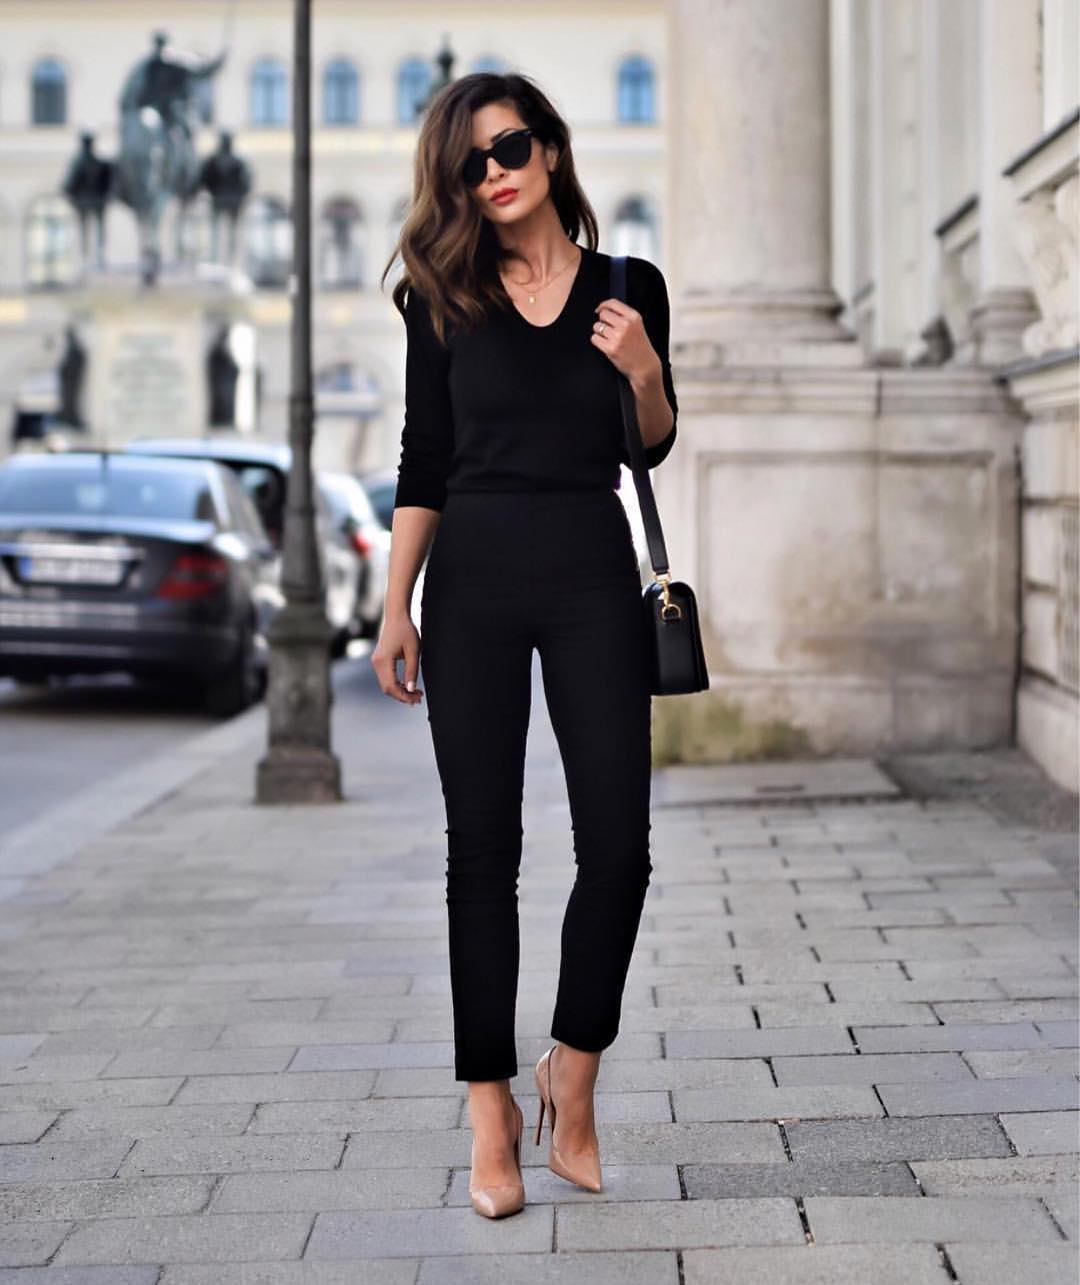 All Black Outfit Idea For Work: Sweater And Pants 2020